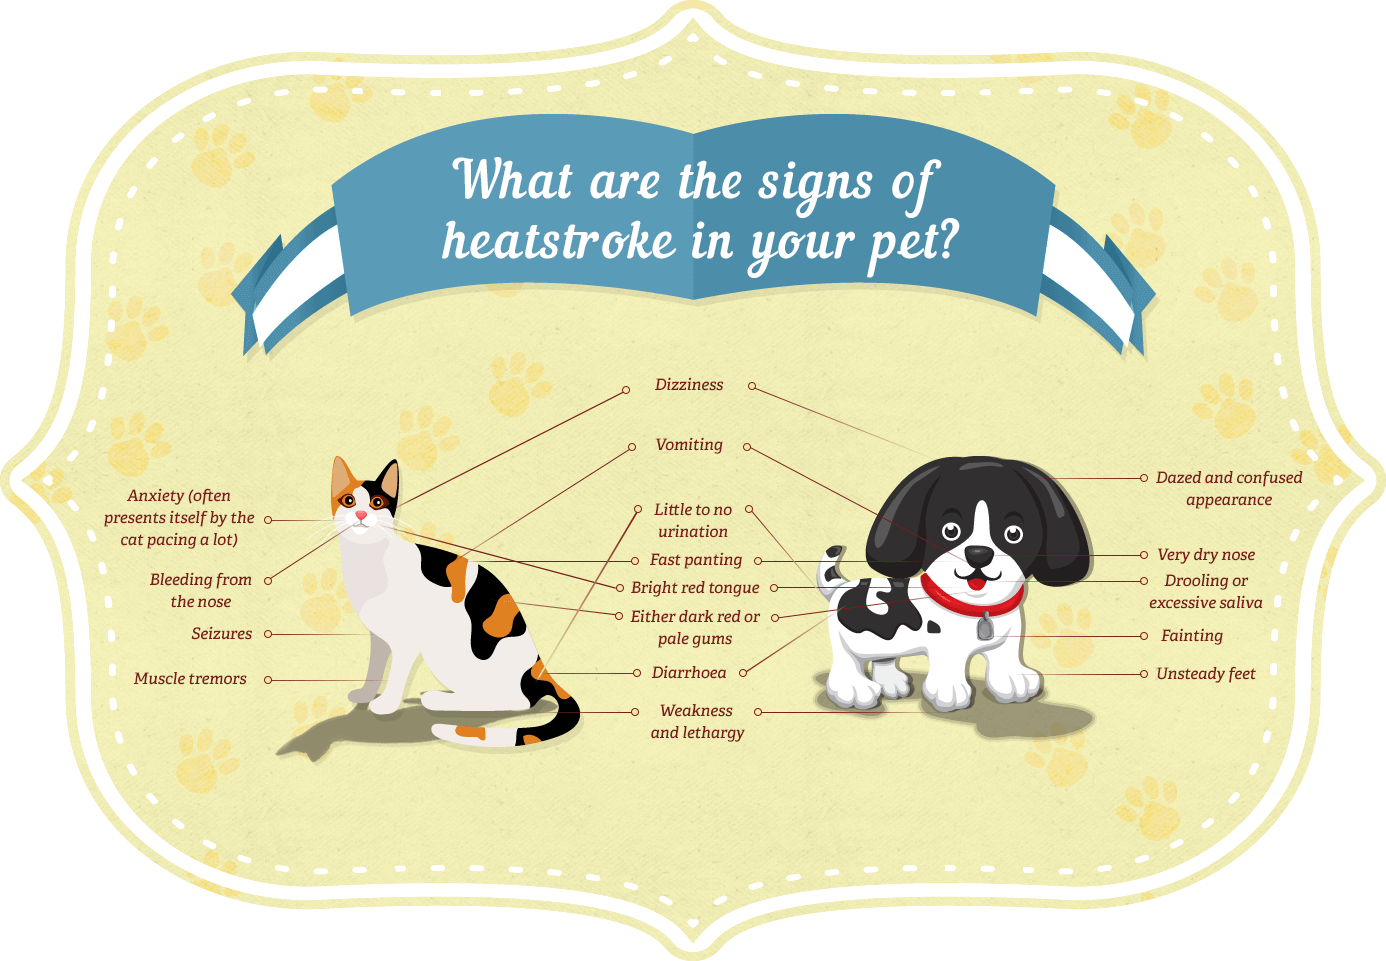 What are the signs of heatstroke in your pet?